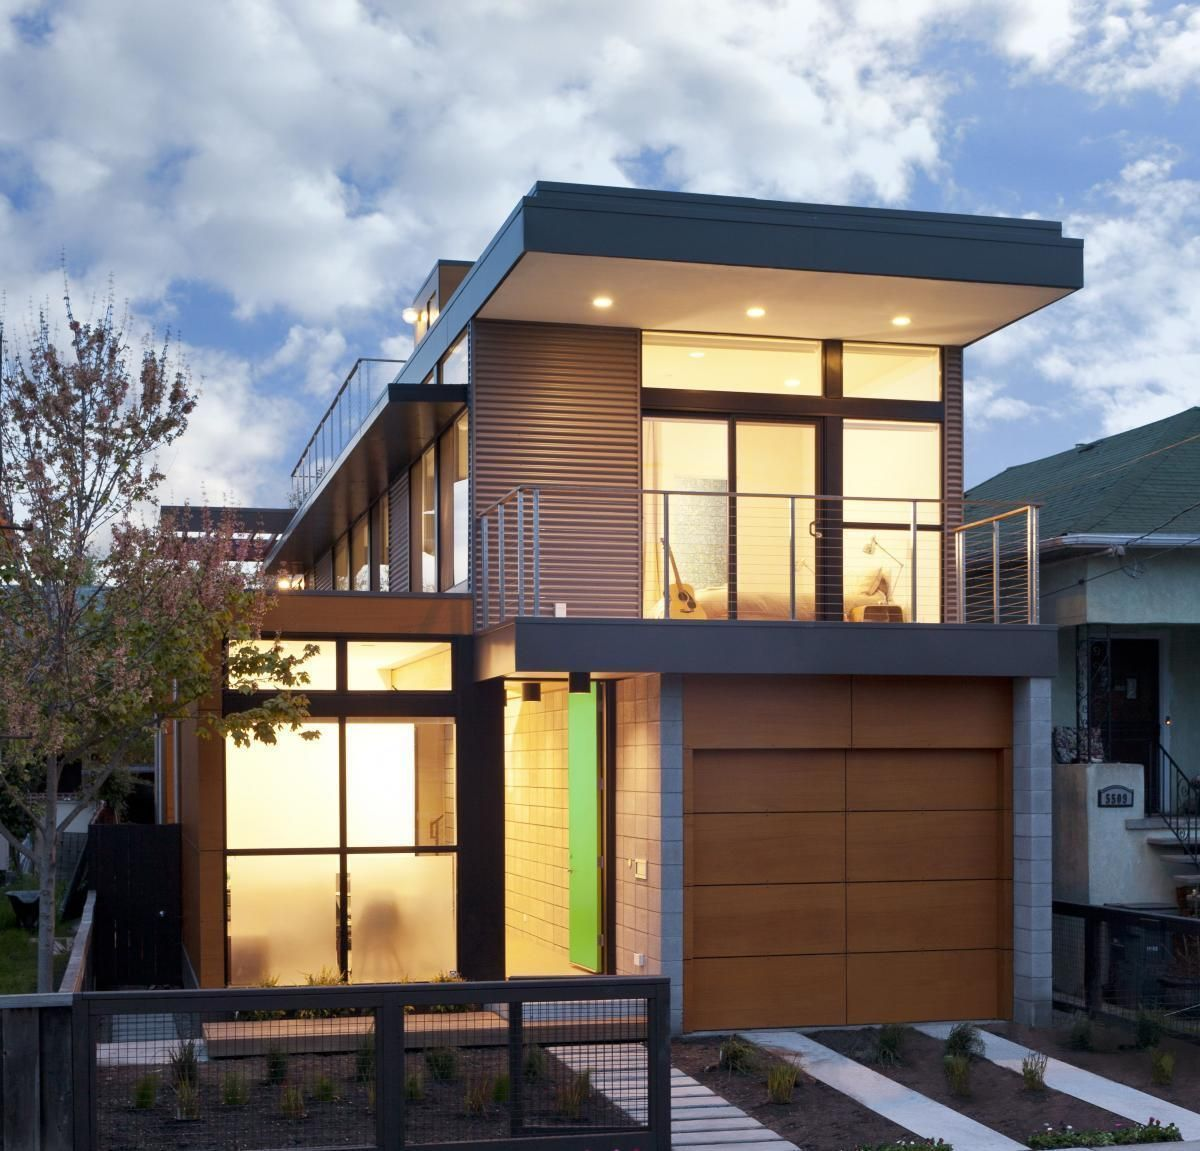 Small modern prefab house design with lighting idea in ceiling as well wooden gate garage also cottage kits cottages jamaica shop rh pinterest